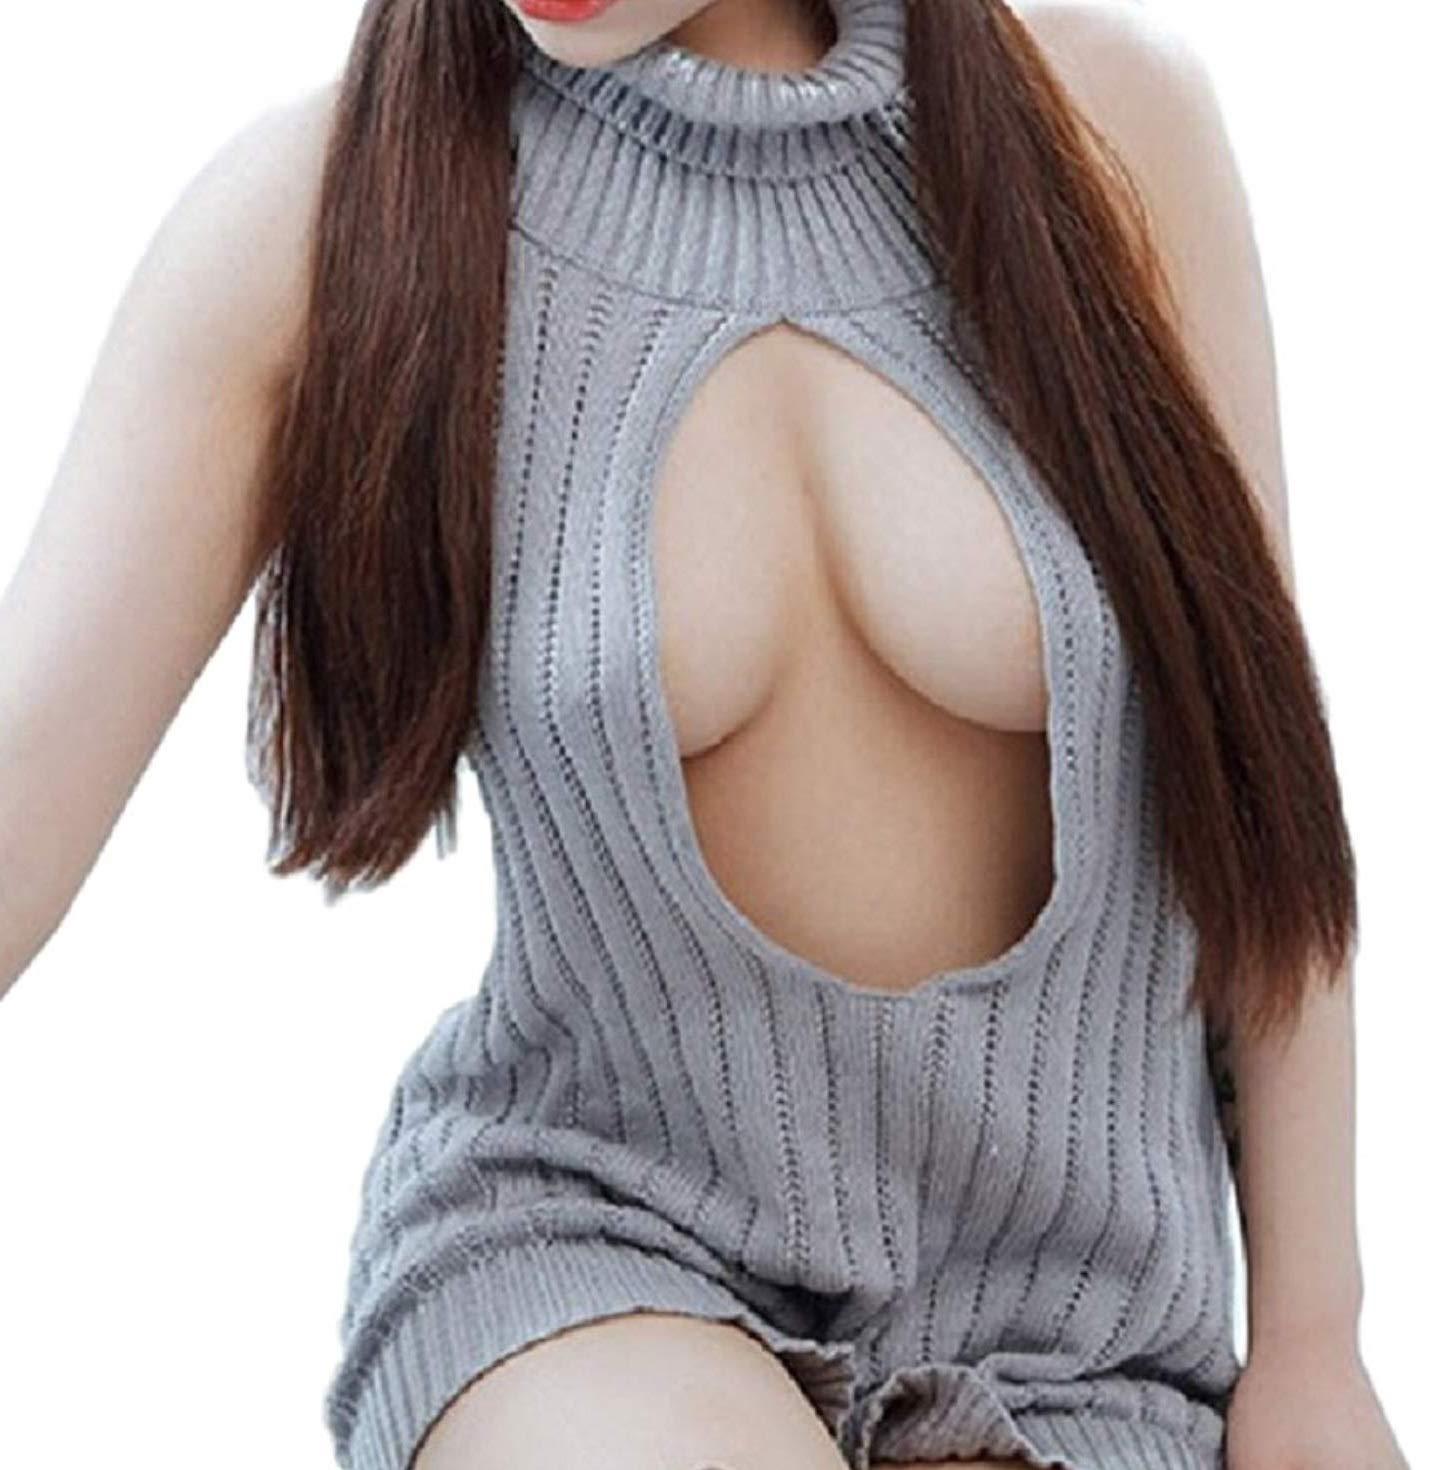 Elibelle Japanese Kawaii Sweaters for Women Sexy Backless Hollow Out Anime Cosplay(LX-GR)